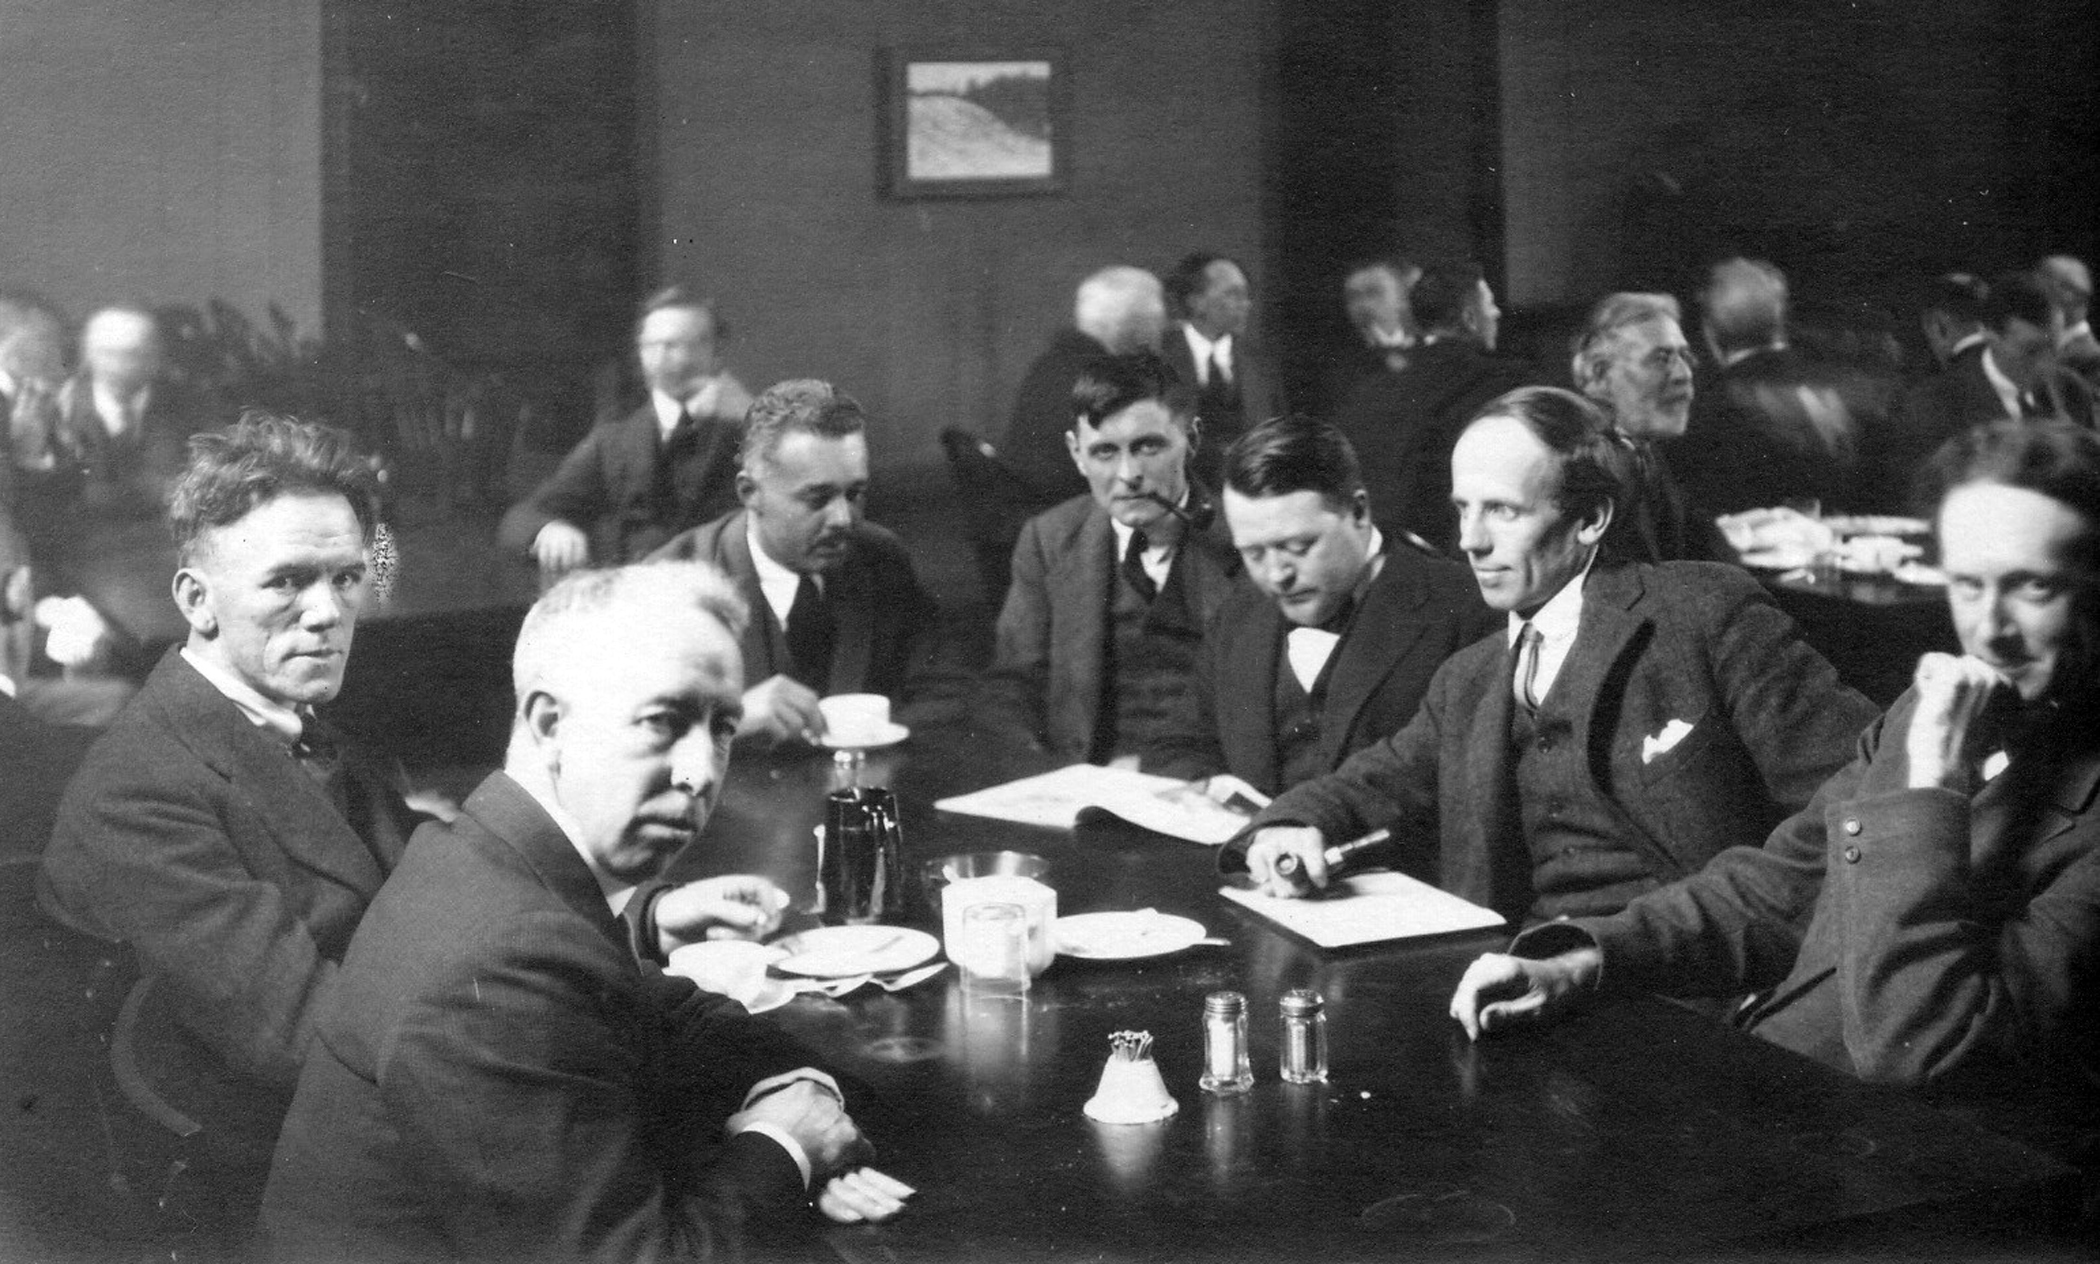 Black and white photo. Seven men seated around a table.